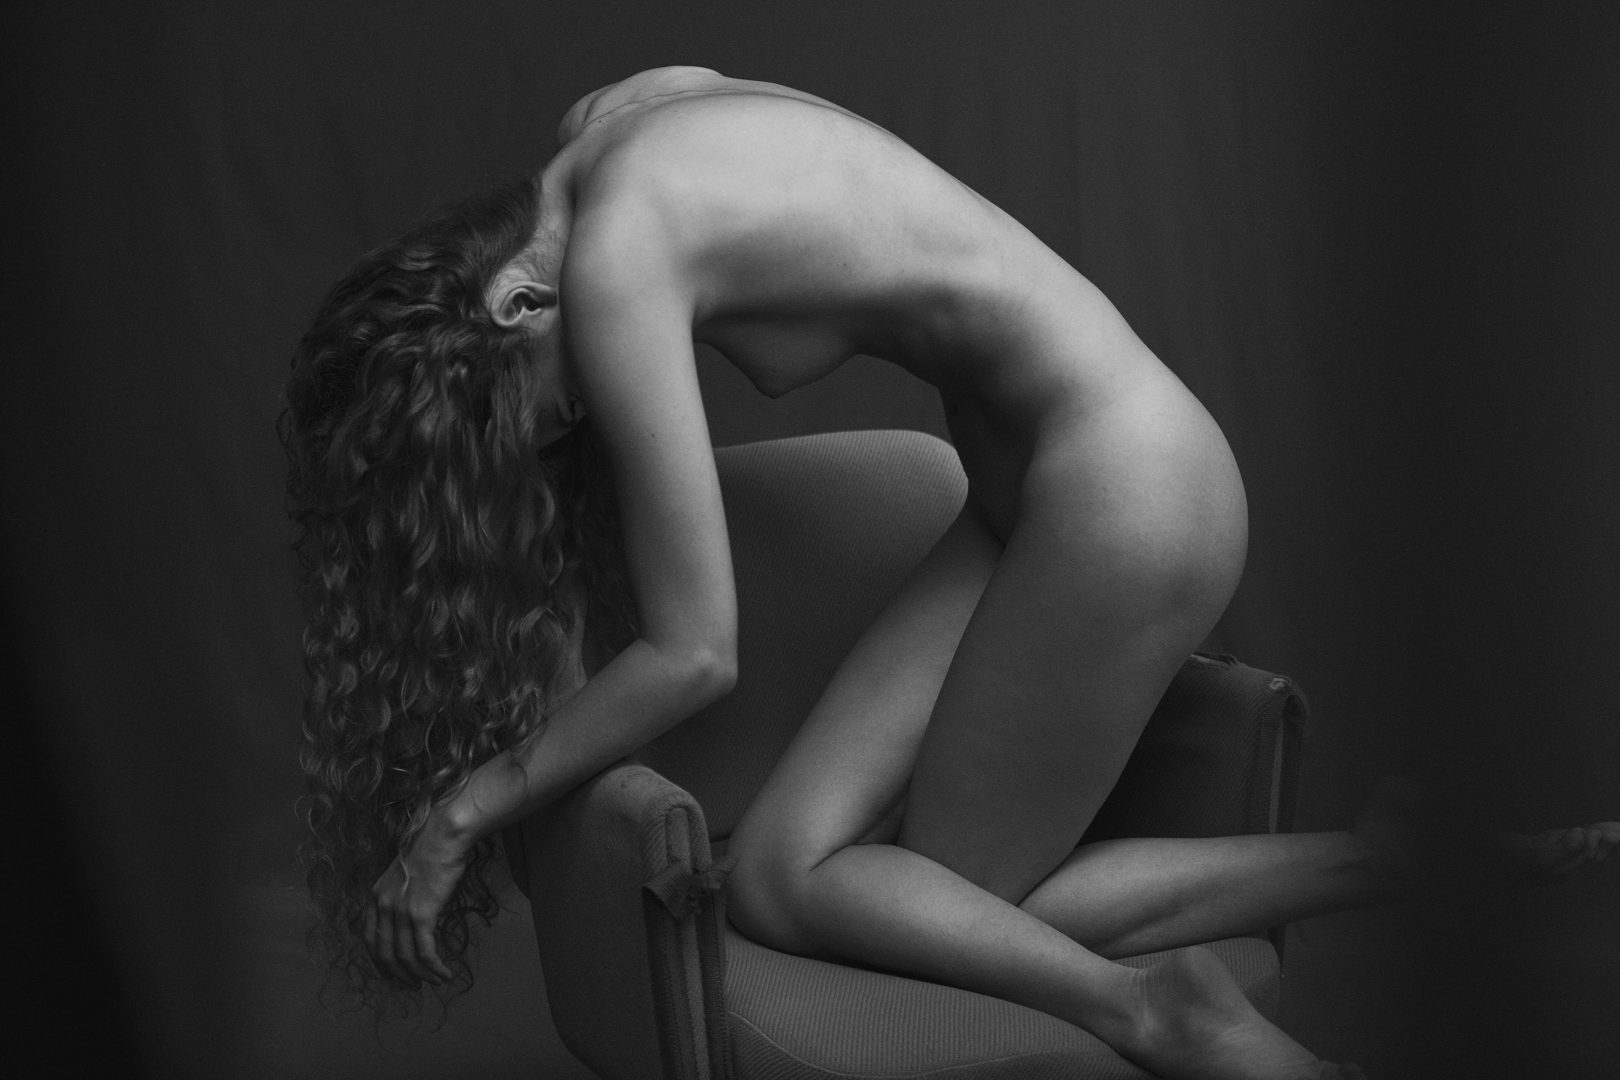 Naked girl from the side kneeing on chair by Stefan Rappo